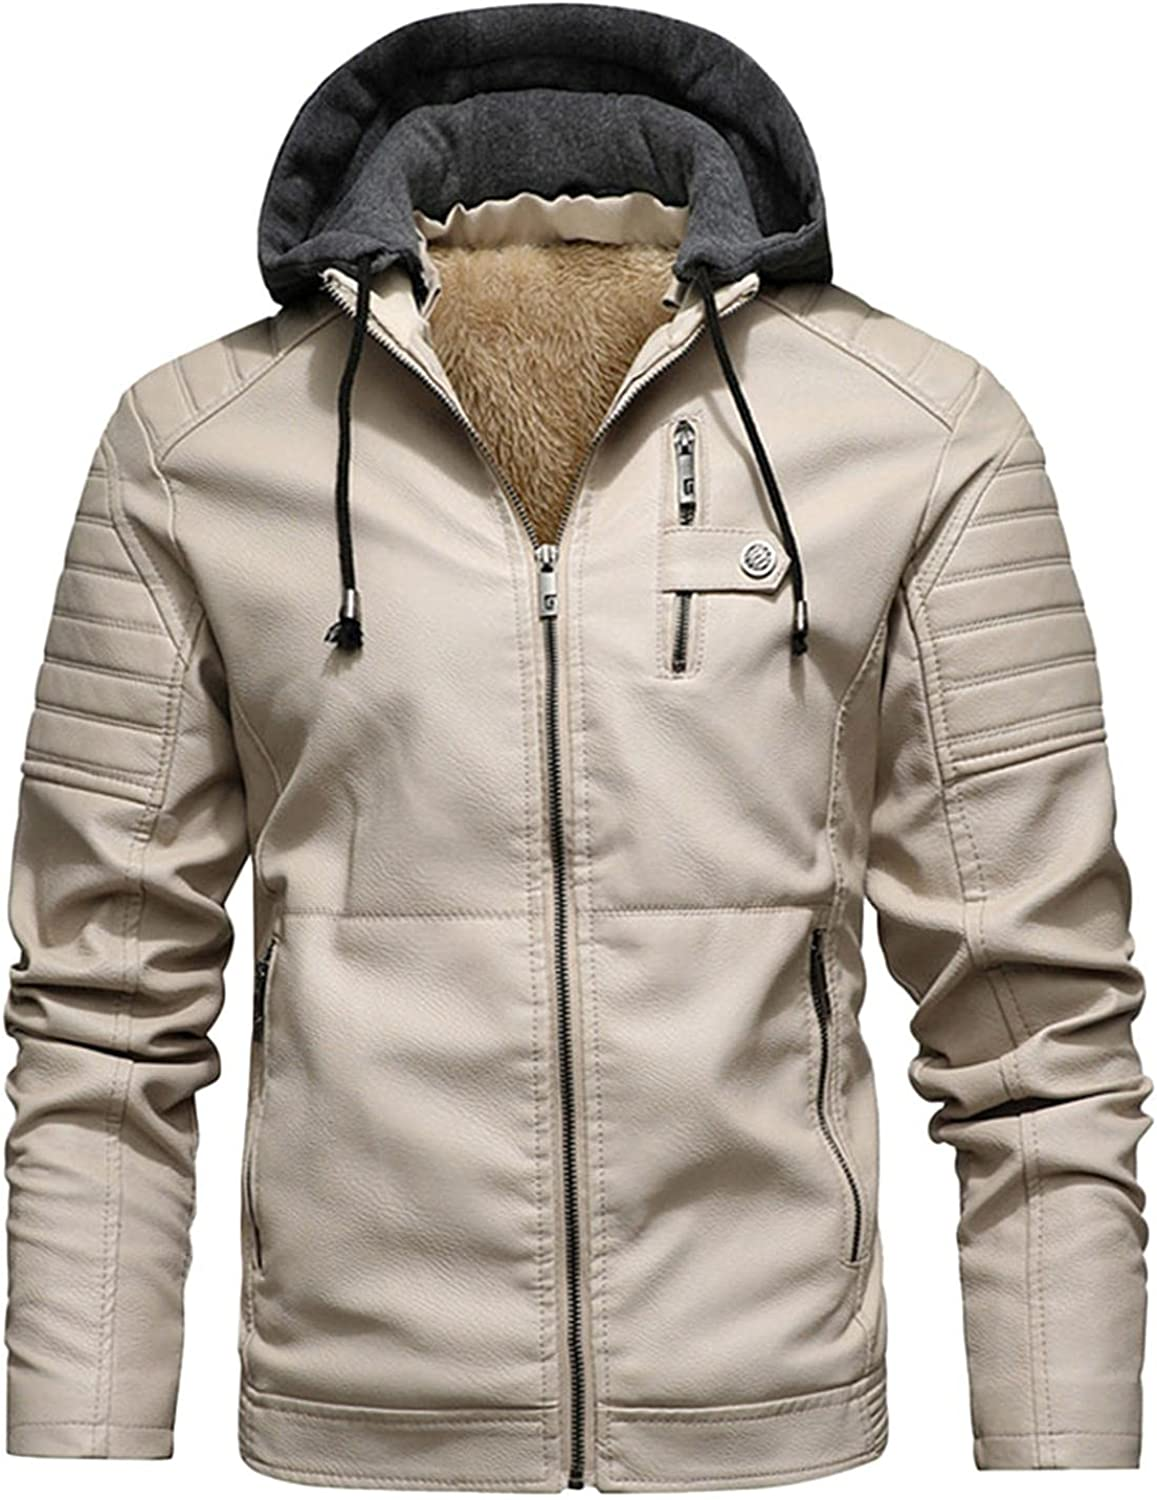 PHSHY Mens Fleece Faux Leather Jacket Motorcycle Bomber Jacket Stand Collar Zipper Windbreaker with a Removed Hooded